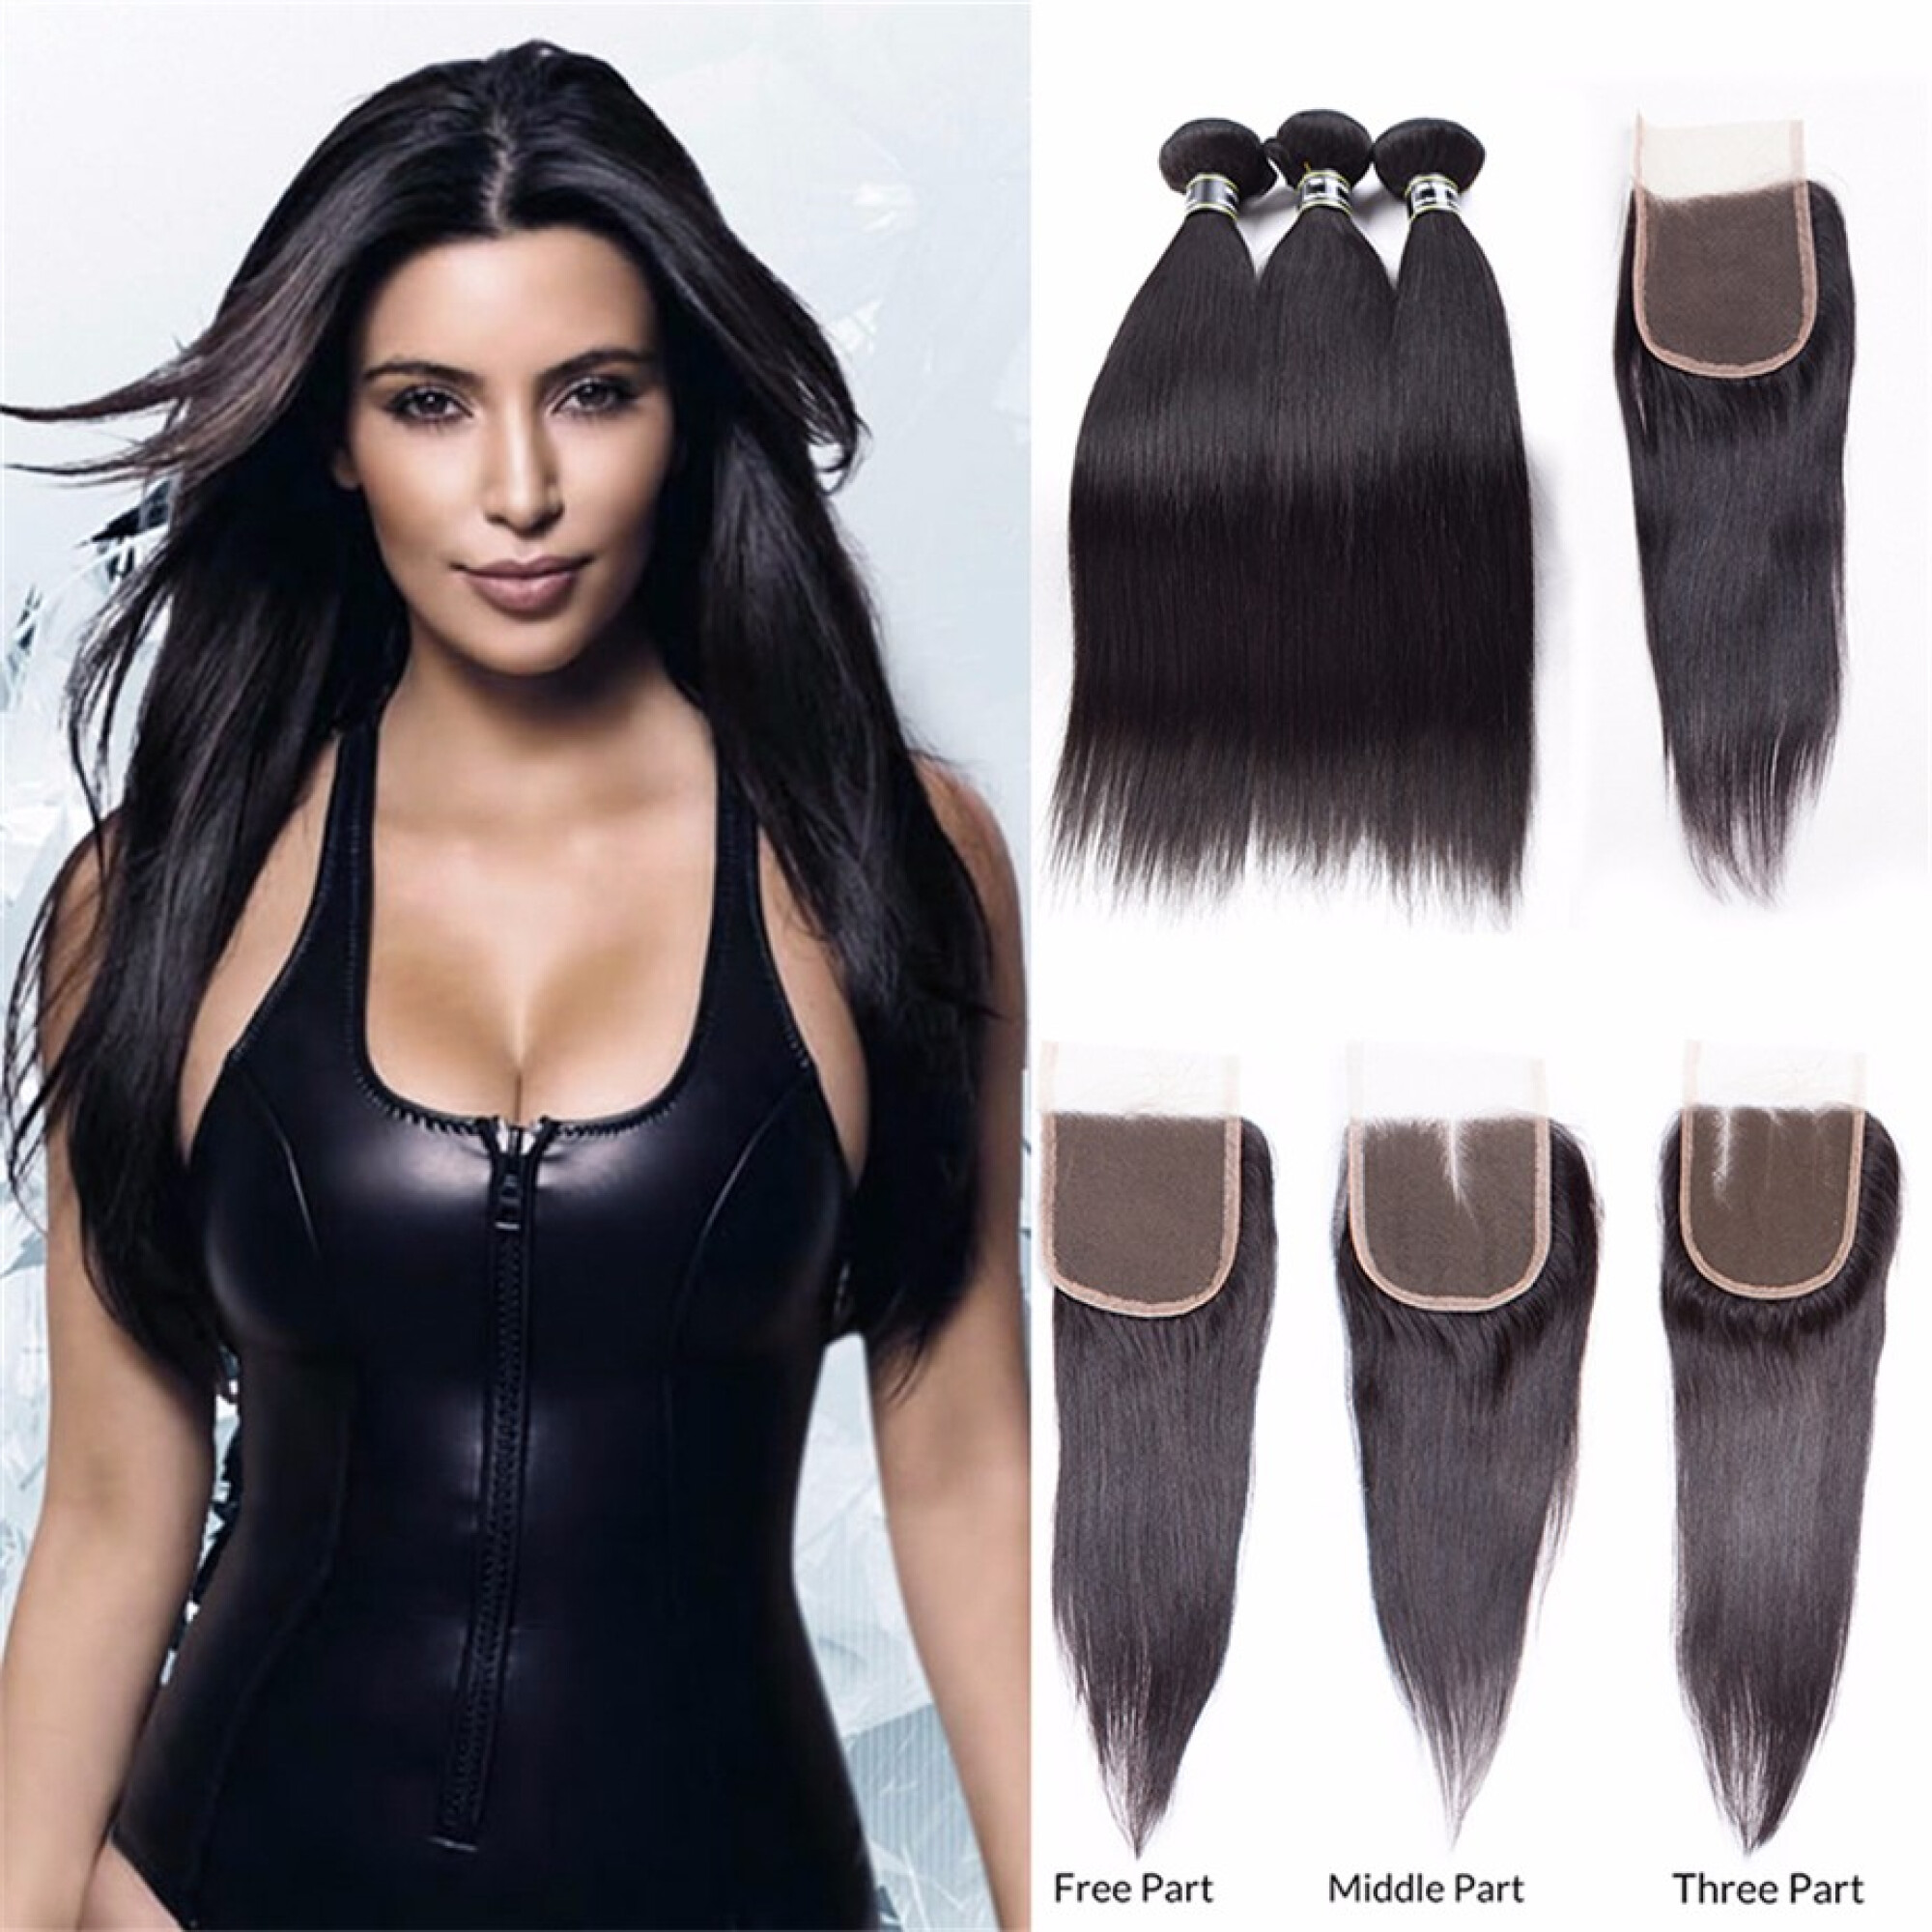 """Amazing Star Virgin Malaysian Straight Hair Bundles with Closure Free Part Straight Human Hair Weave, 14""""16""""18"""" with 14"""""""